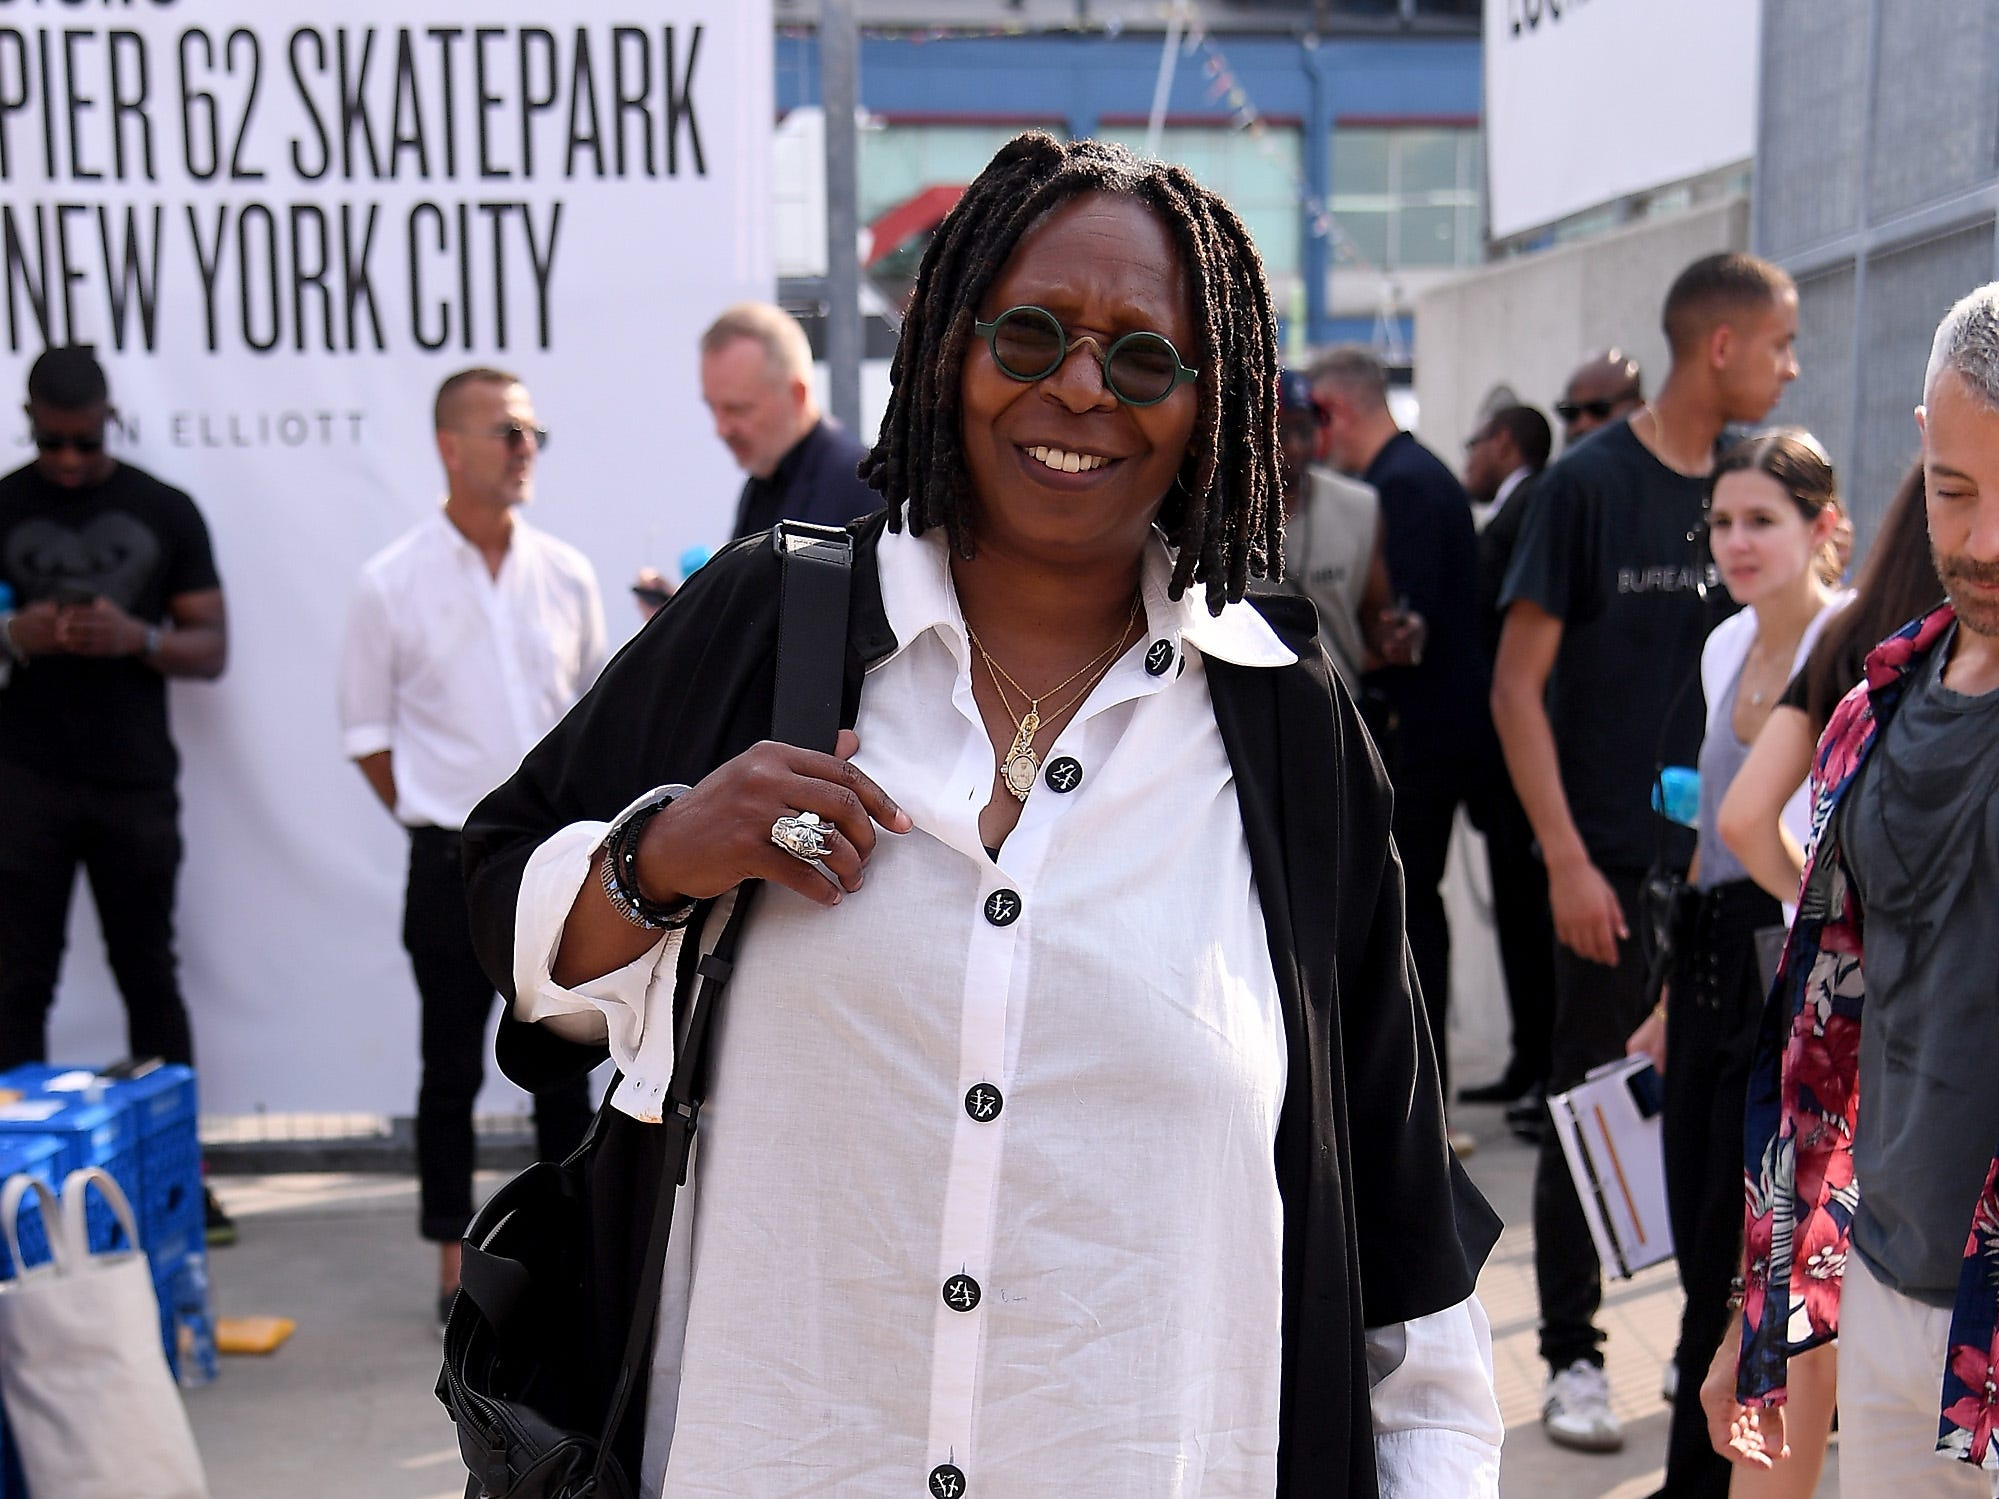 NEW YORK, NY - SEPTEMBER 06:  Whoopi Goldberg attends the John Elliott front row during New York Fashion Week: The Shows on September 6, 2018 in New York City.  (Photo by Nicholas Hunt/Getty Images for NYFW: The Shows) ORG XMIT: 775215621 ORIG FILE ID: 1027970752